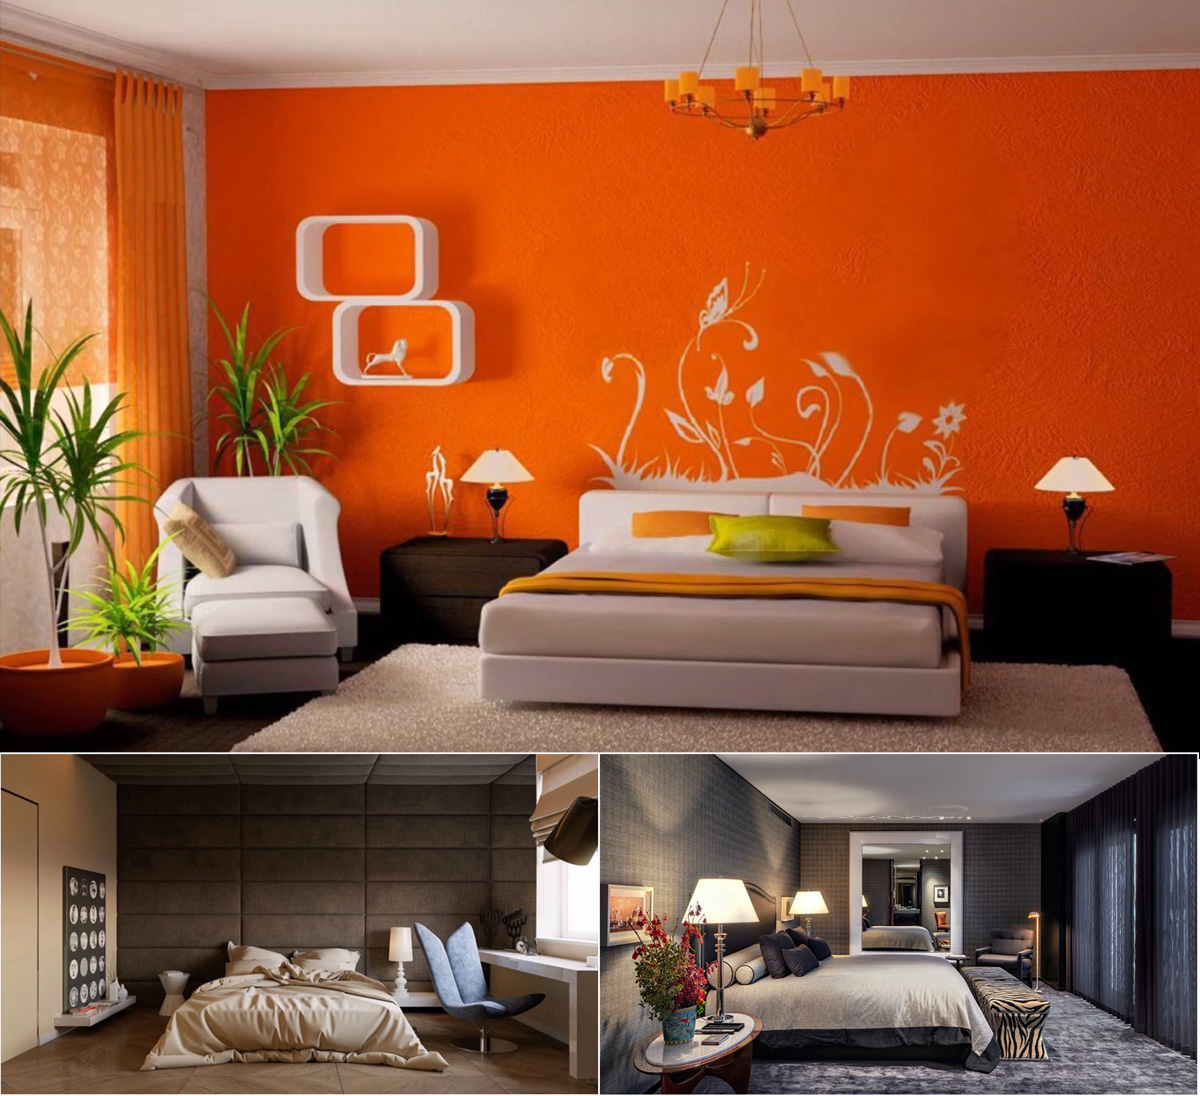 Idea Without Investing Too Much Money Dark Cozy Room Rich Schemes With Jewel Tones Make Your Bedroom Space The